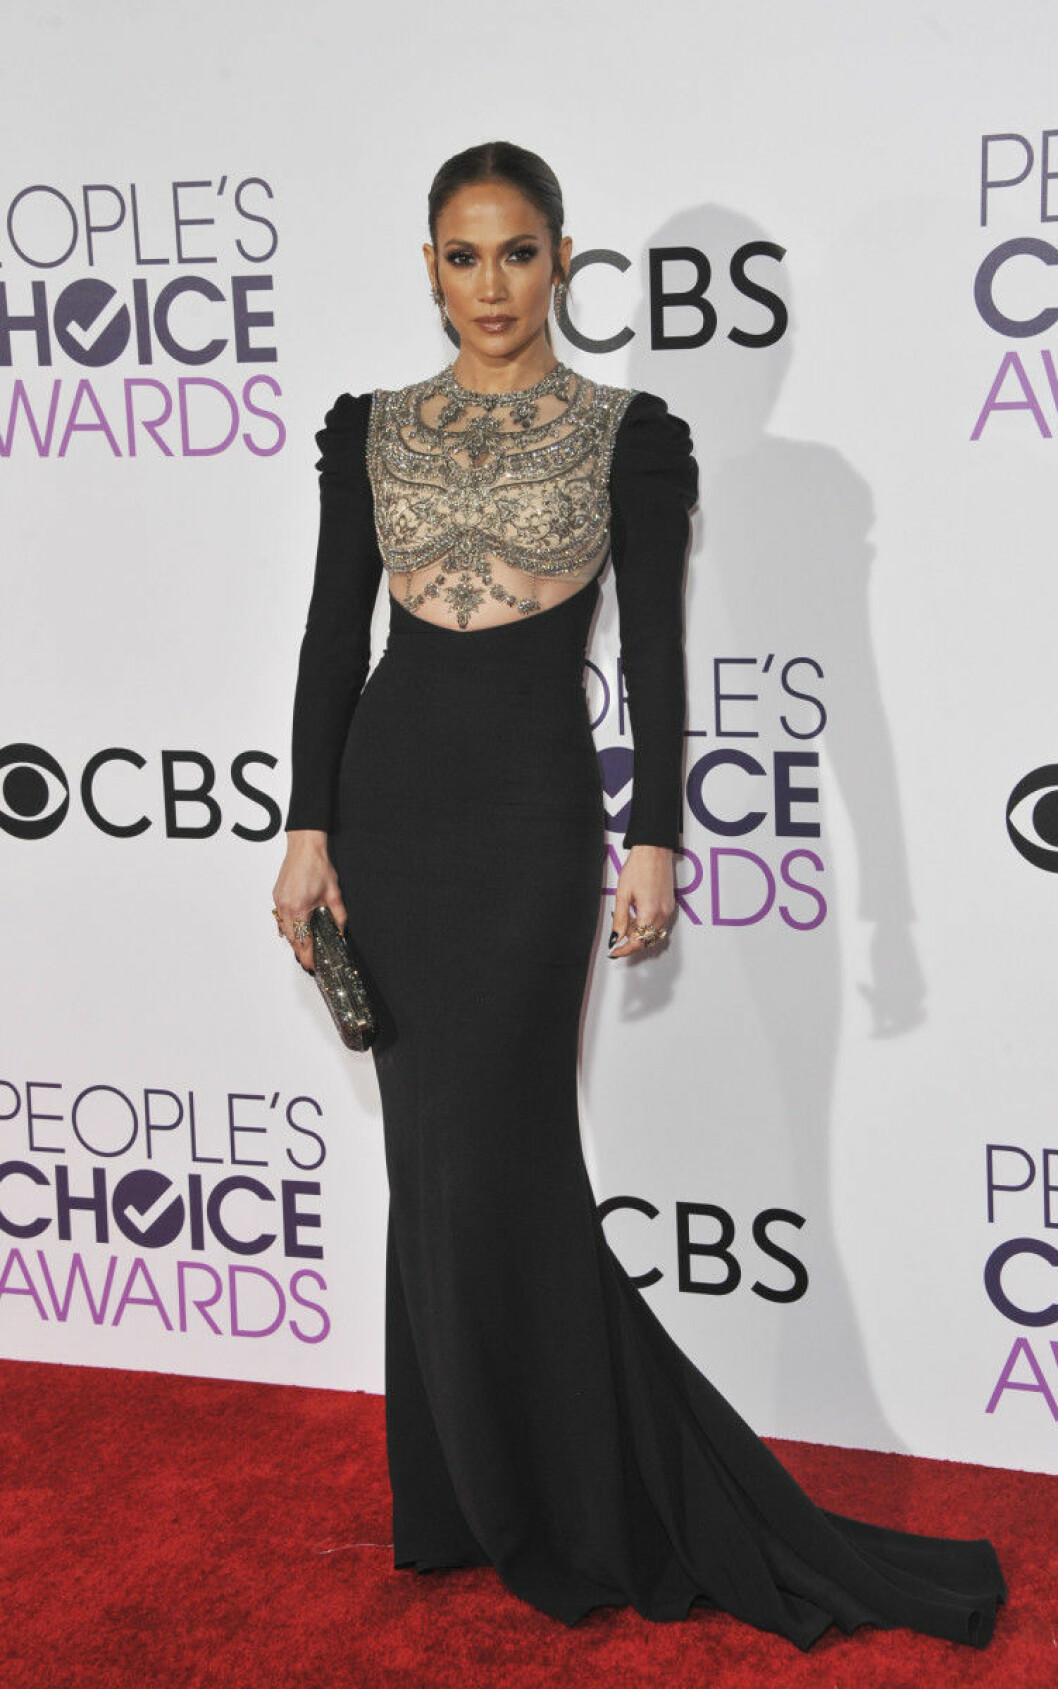 People's Choice Awards 2017 arrivals Featuring: Jennifer Lopez Where: Los Angeles, California, United States When: 19 Jan 2017 Credit: Apega/WENN.com